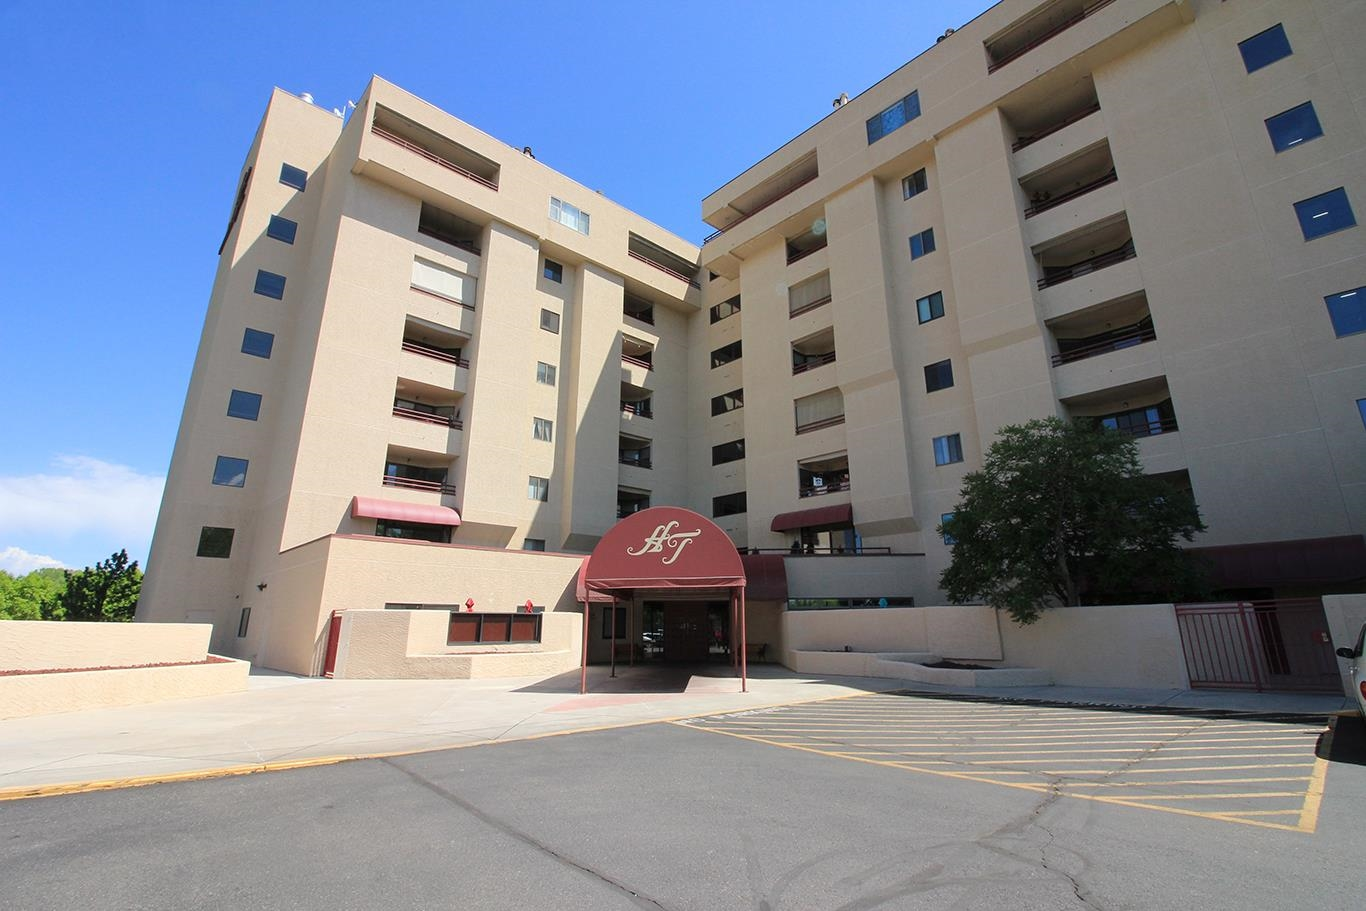 You don't want to miss out on the centrally located condo that is a true lock & leave that is ready for new owner! Fabulous location that is close to everything & move in ready. This 2 bed, 2 bath home is a split bed design on the 3rd floor with great deck, in unit laundry & so much more. Enjoy all the amenities the building has to offer like a pool, hot tub, workout room, game room, fiber optic internet & more! Did I mention that the HOA covers everything but electric!! There are 2 dedicated parking spaces, shared storage & so much more! Come take a closer look at this great unit!